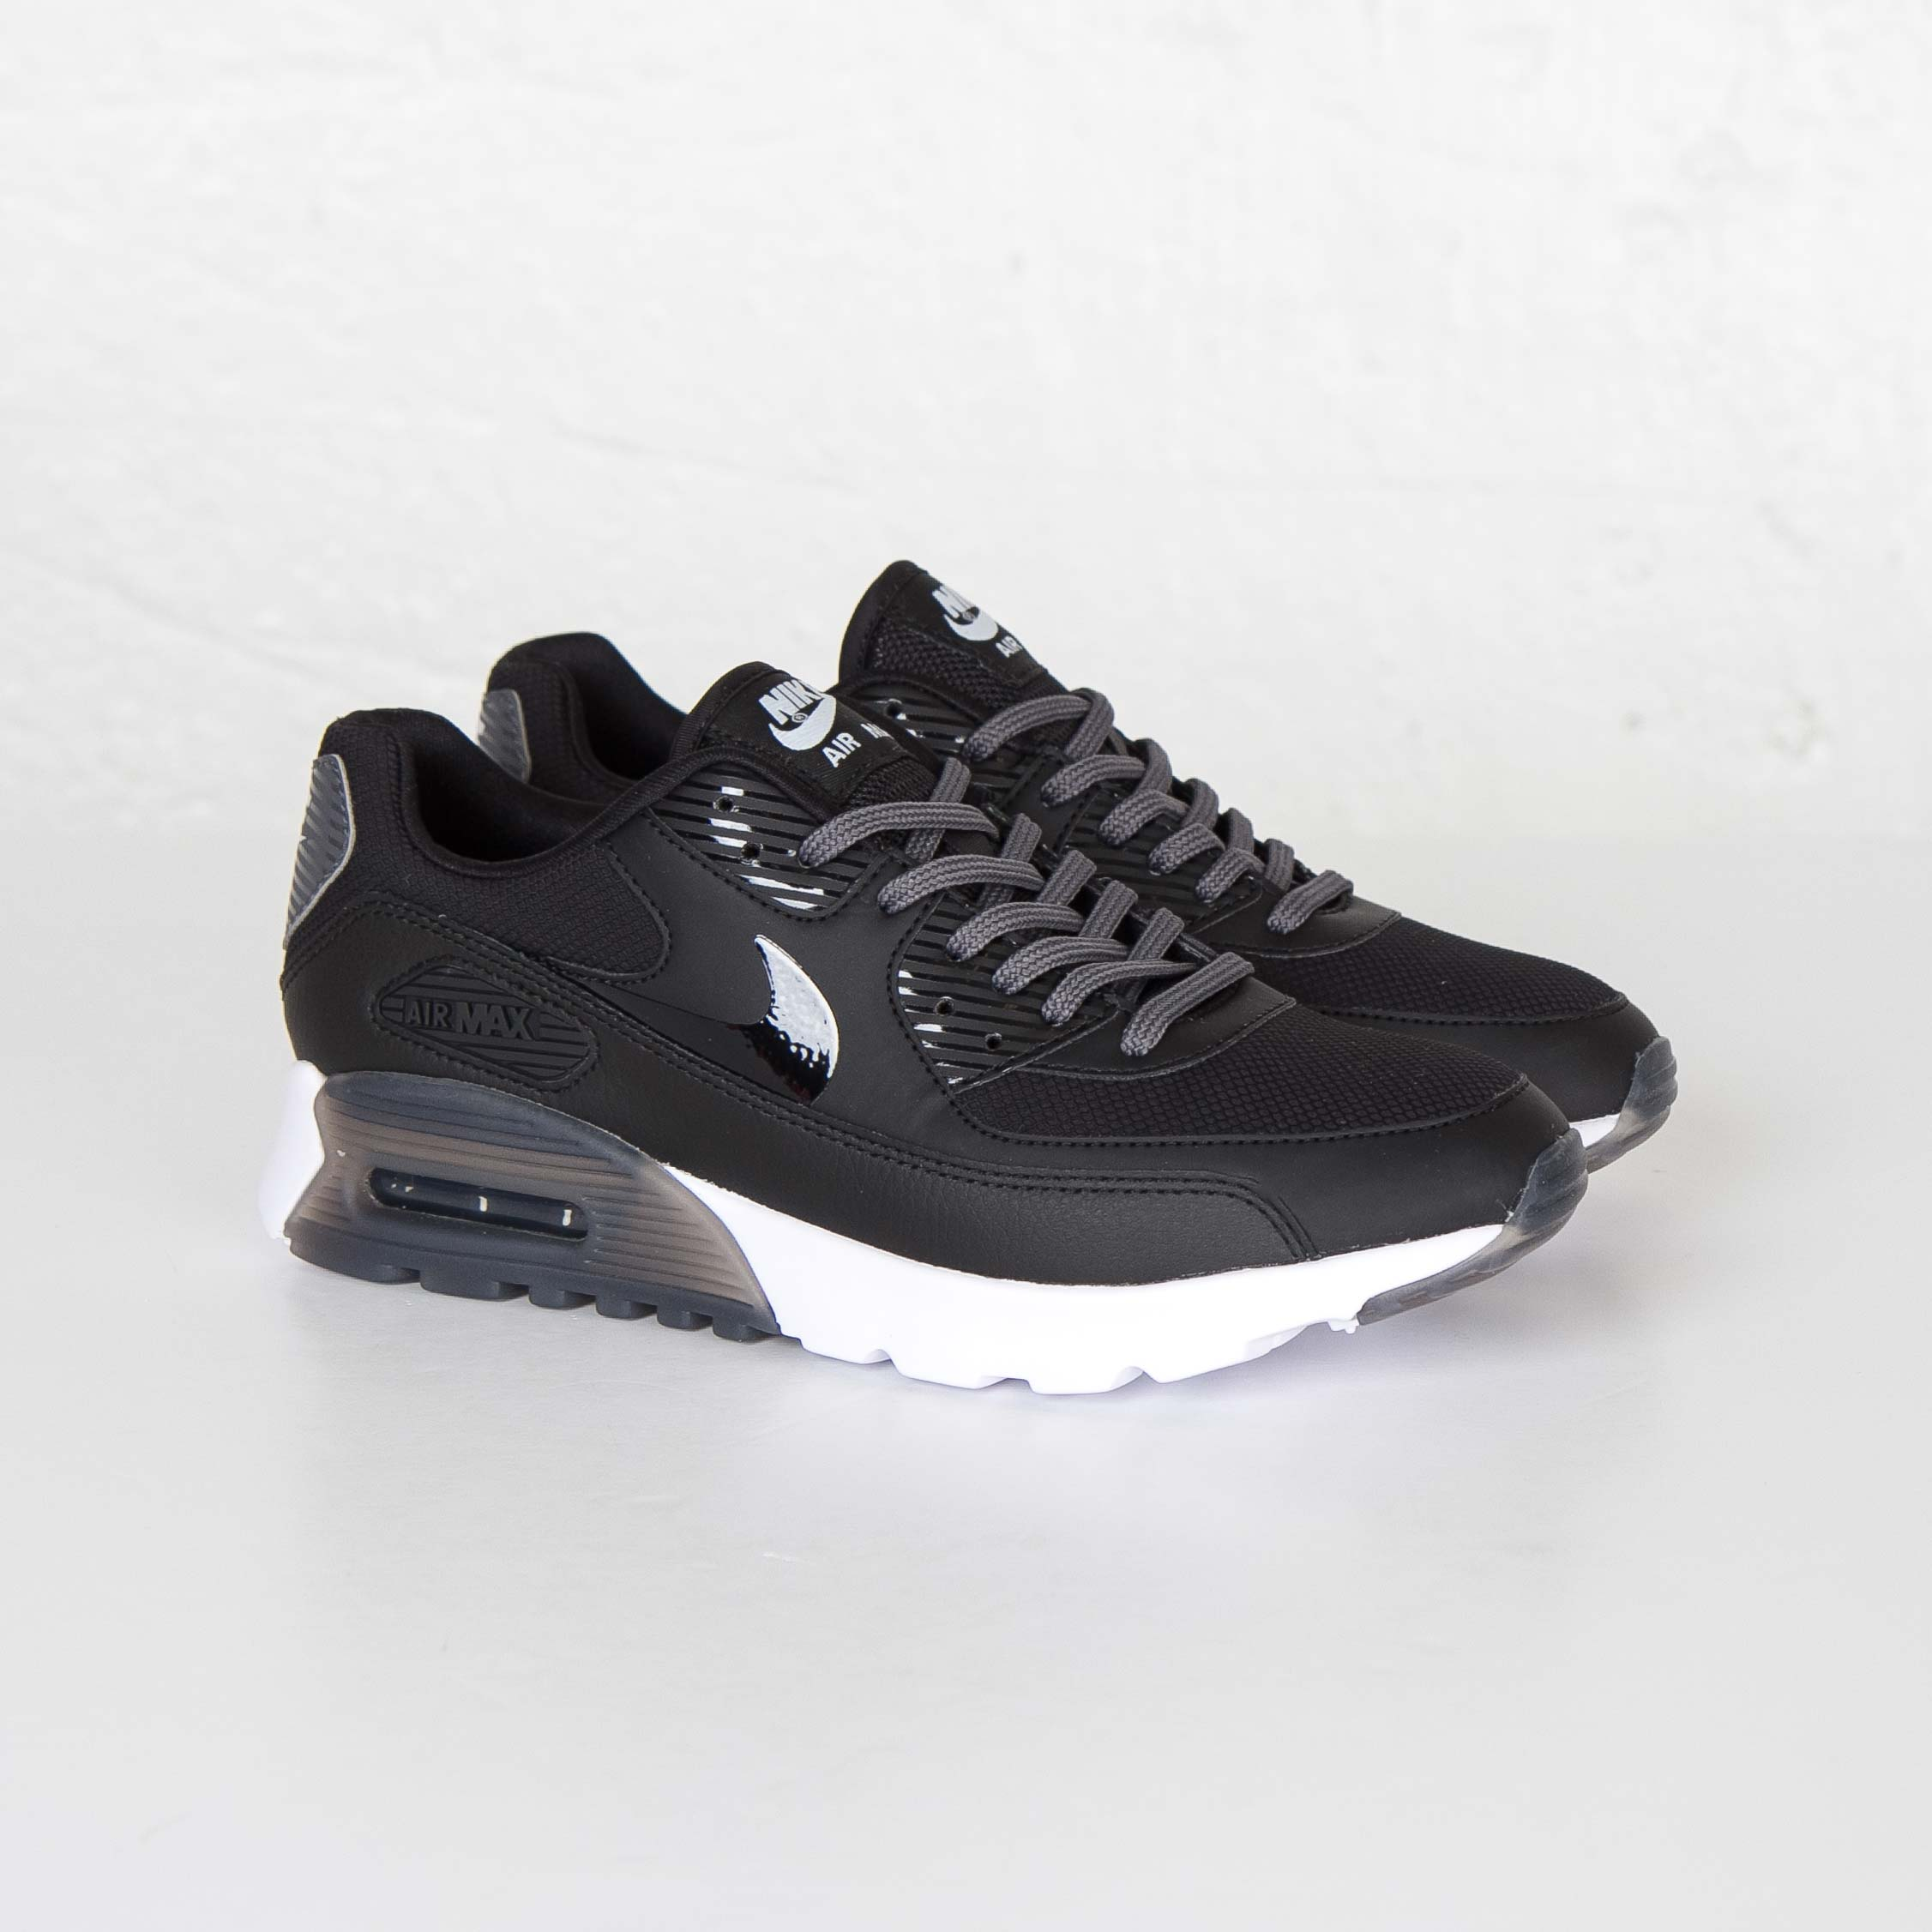 6ce7166d38 Nike Air Max 90 Ultra Essential - 724981-007 - Sneakersnstuff ...